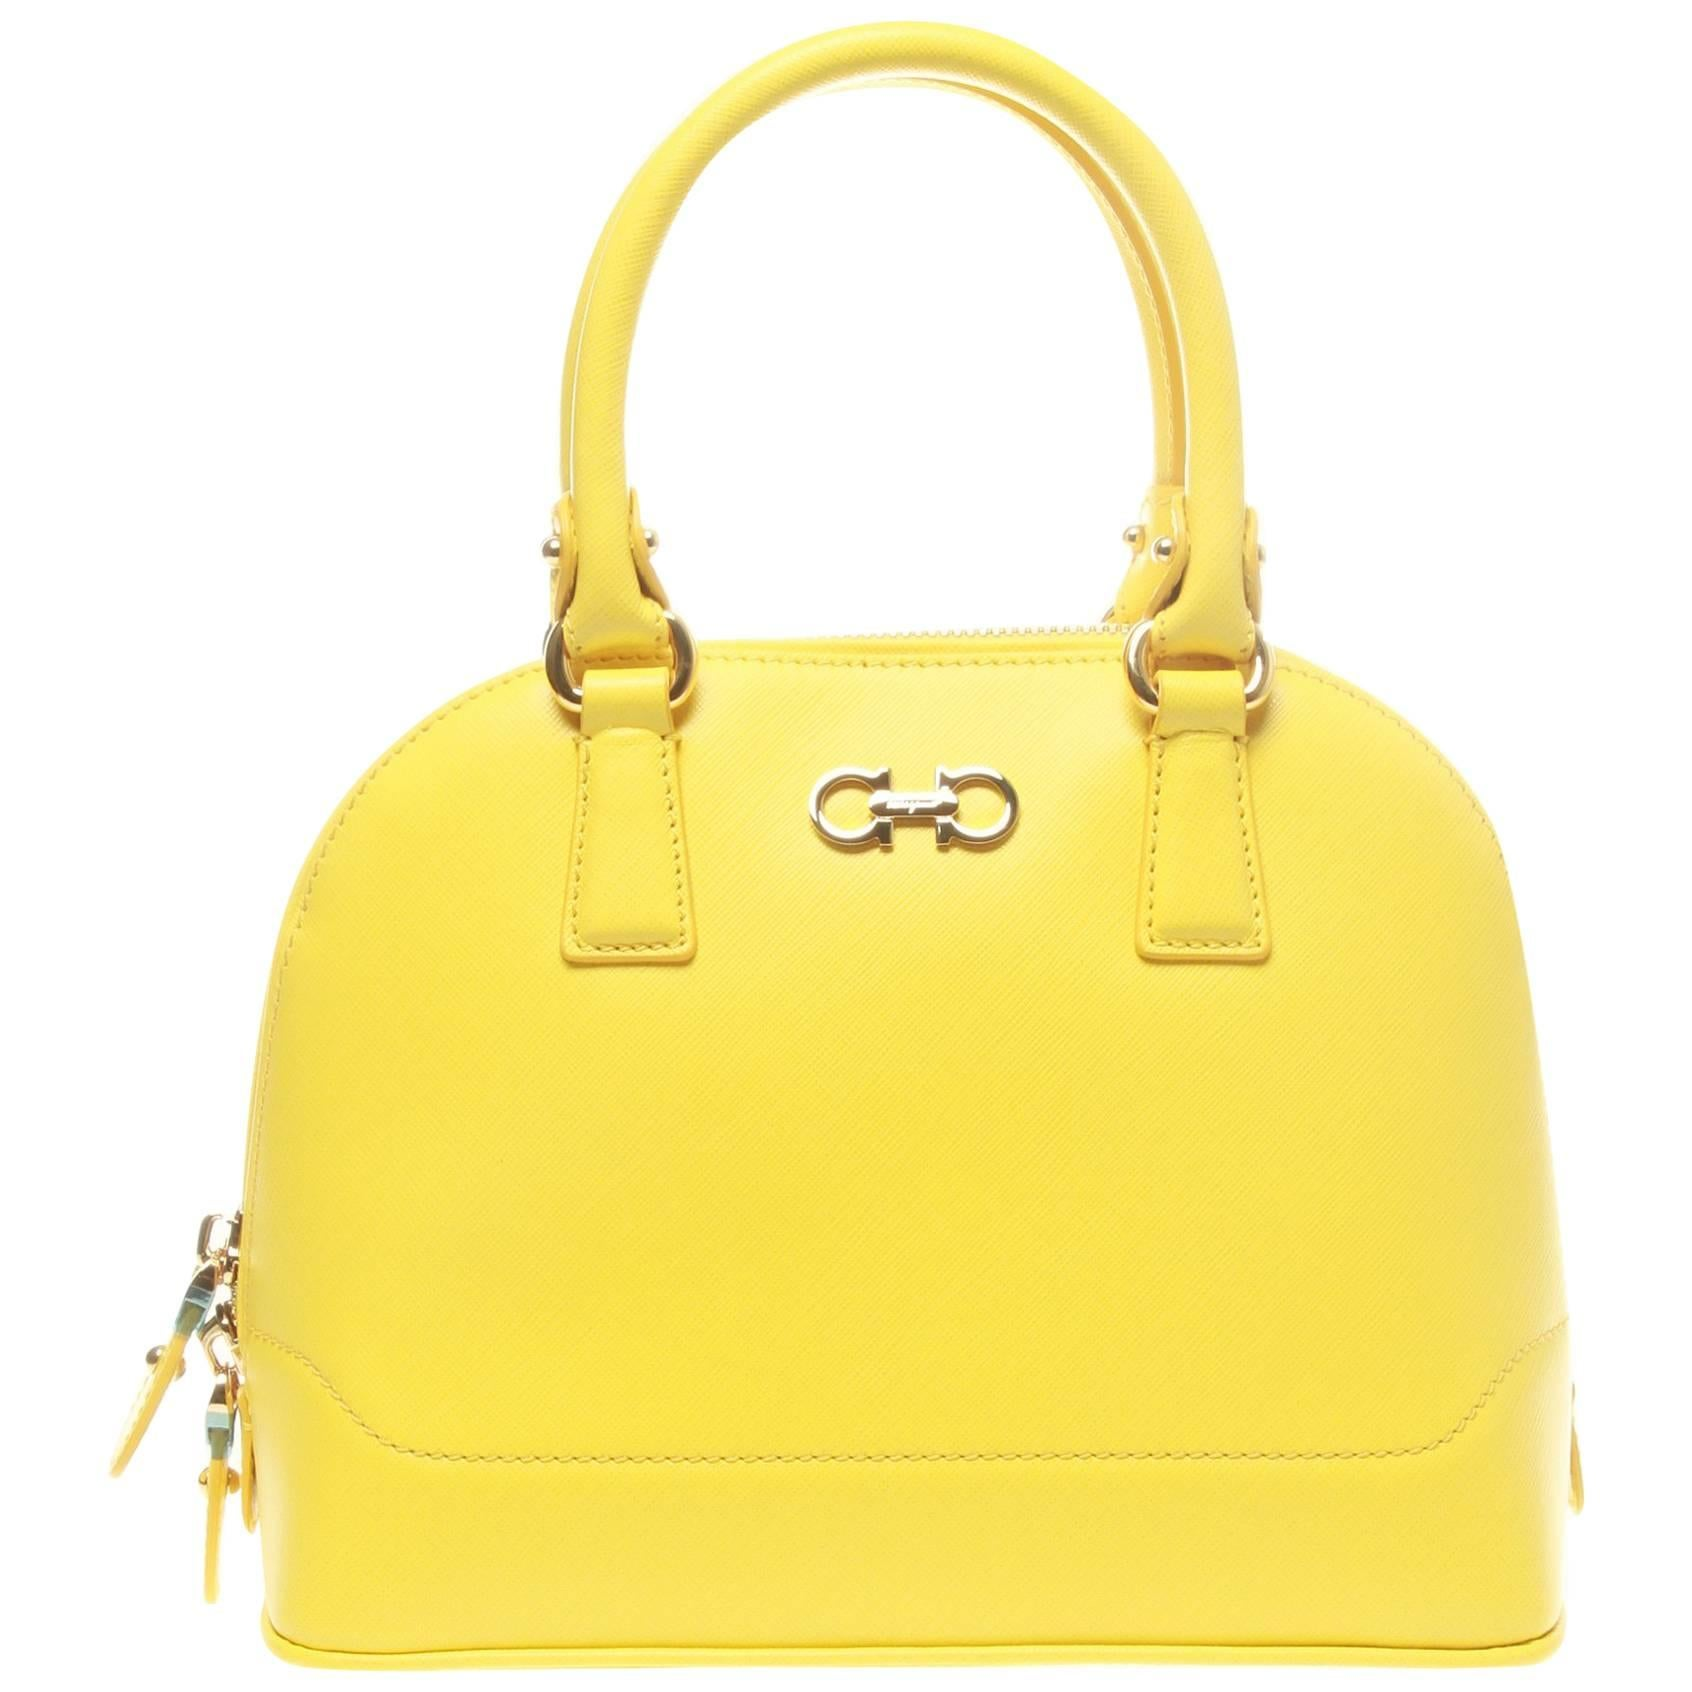 1stdibs Salvatore Ferragamo Yellow Darina Crossbody Bag KISTNif